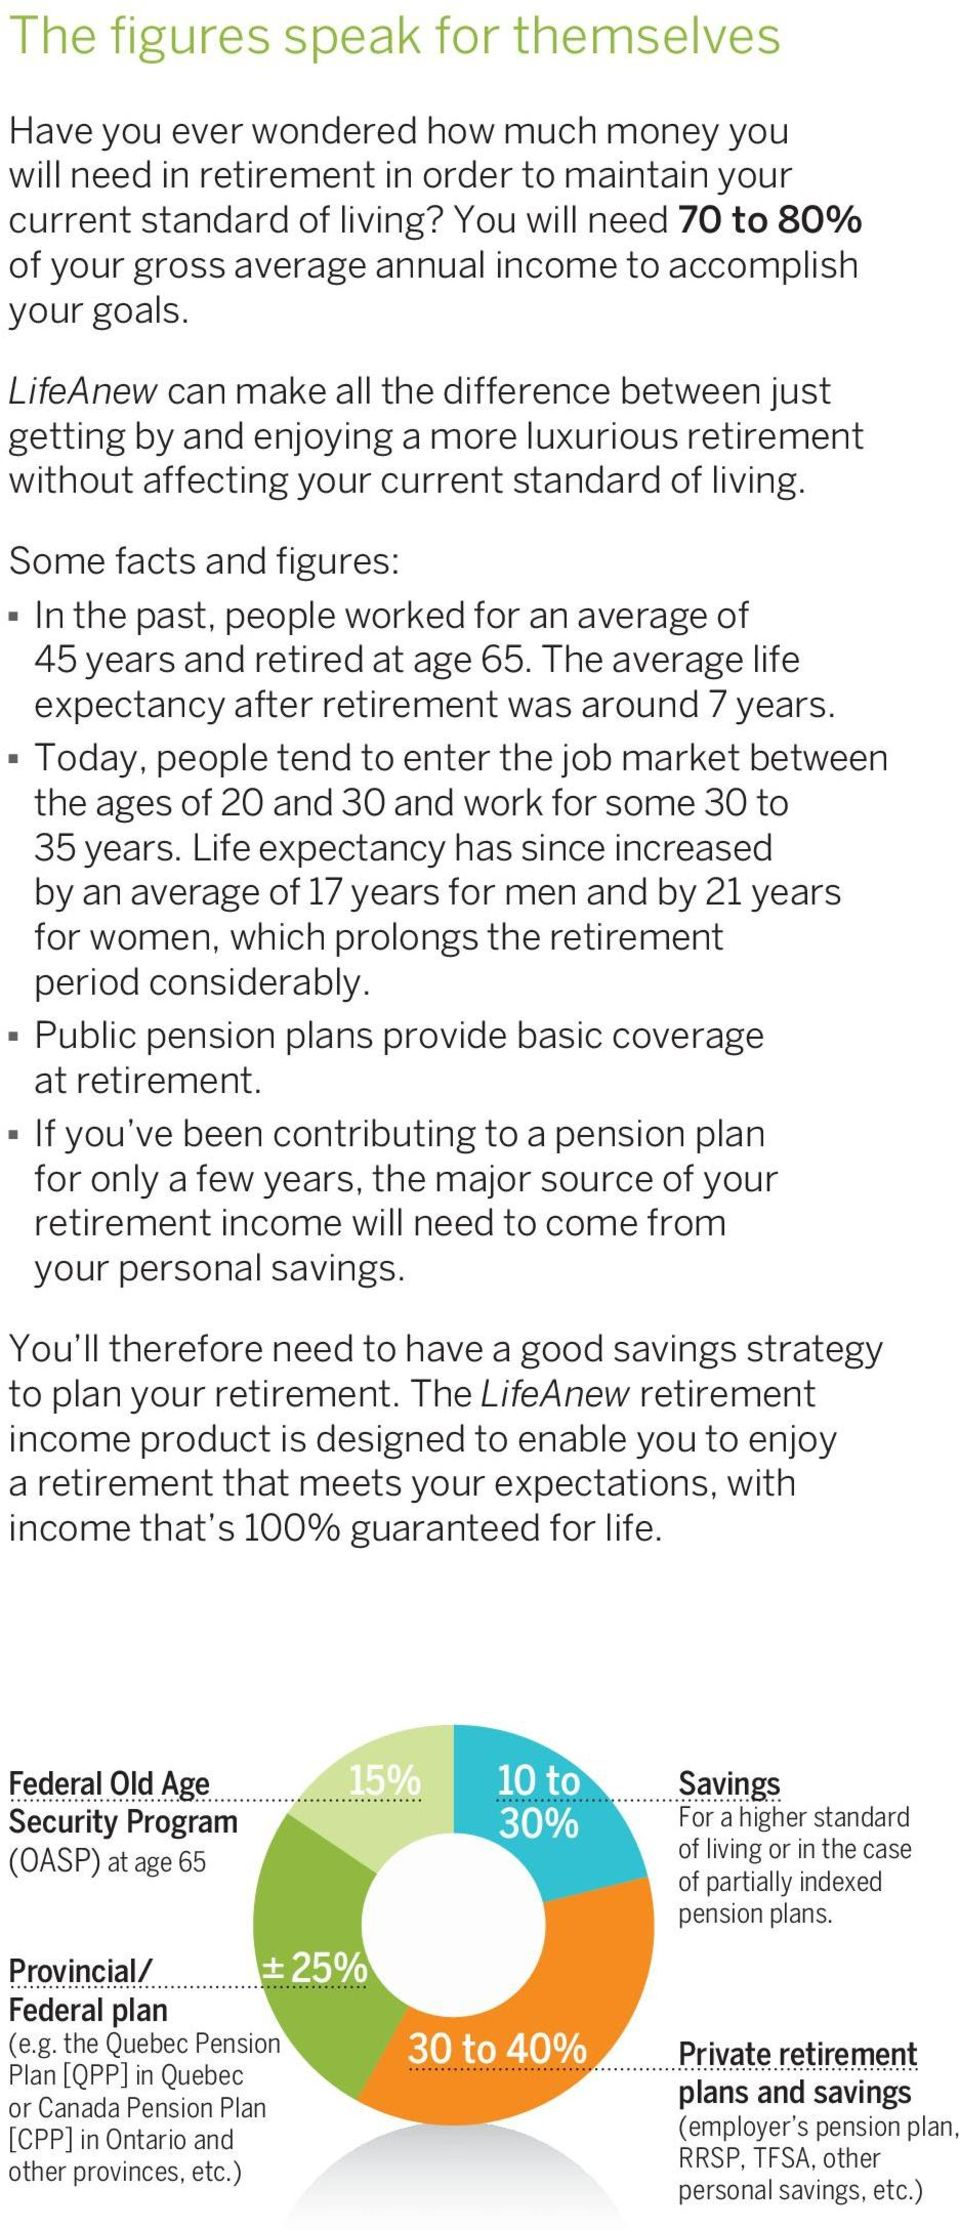 LifeAnew can make all the difference between just getting by and enjoying a more luxurious retirement without affecting your current standard of living.